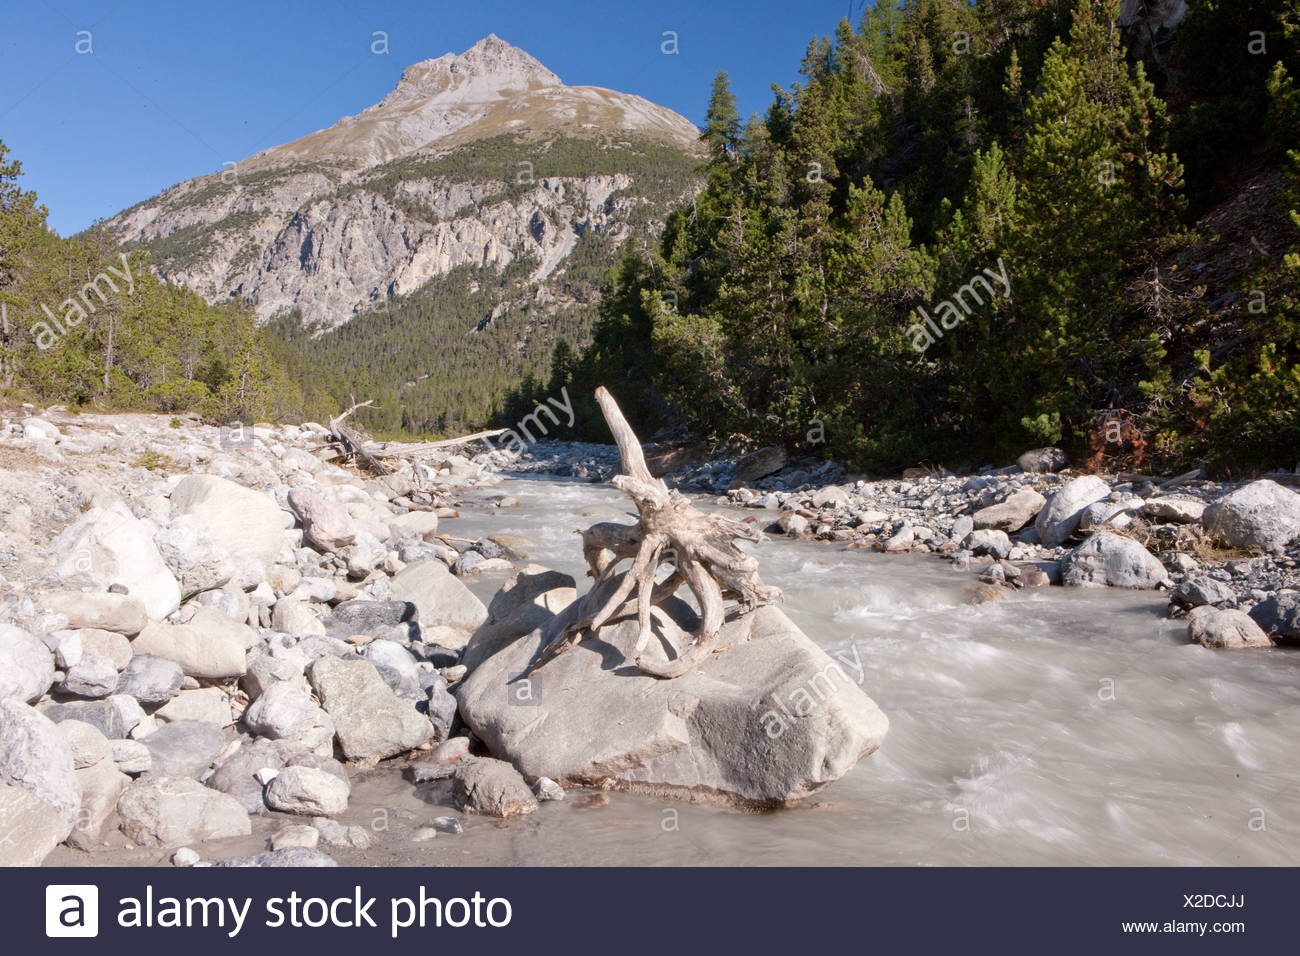 National park, Ofenpass, nature, Il Fuorn, wood, forest, canton, GR, Graubünden, Grisons, Switzerland, Europe, brook, scenery, l - Stock Image